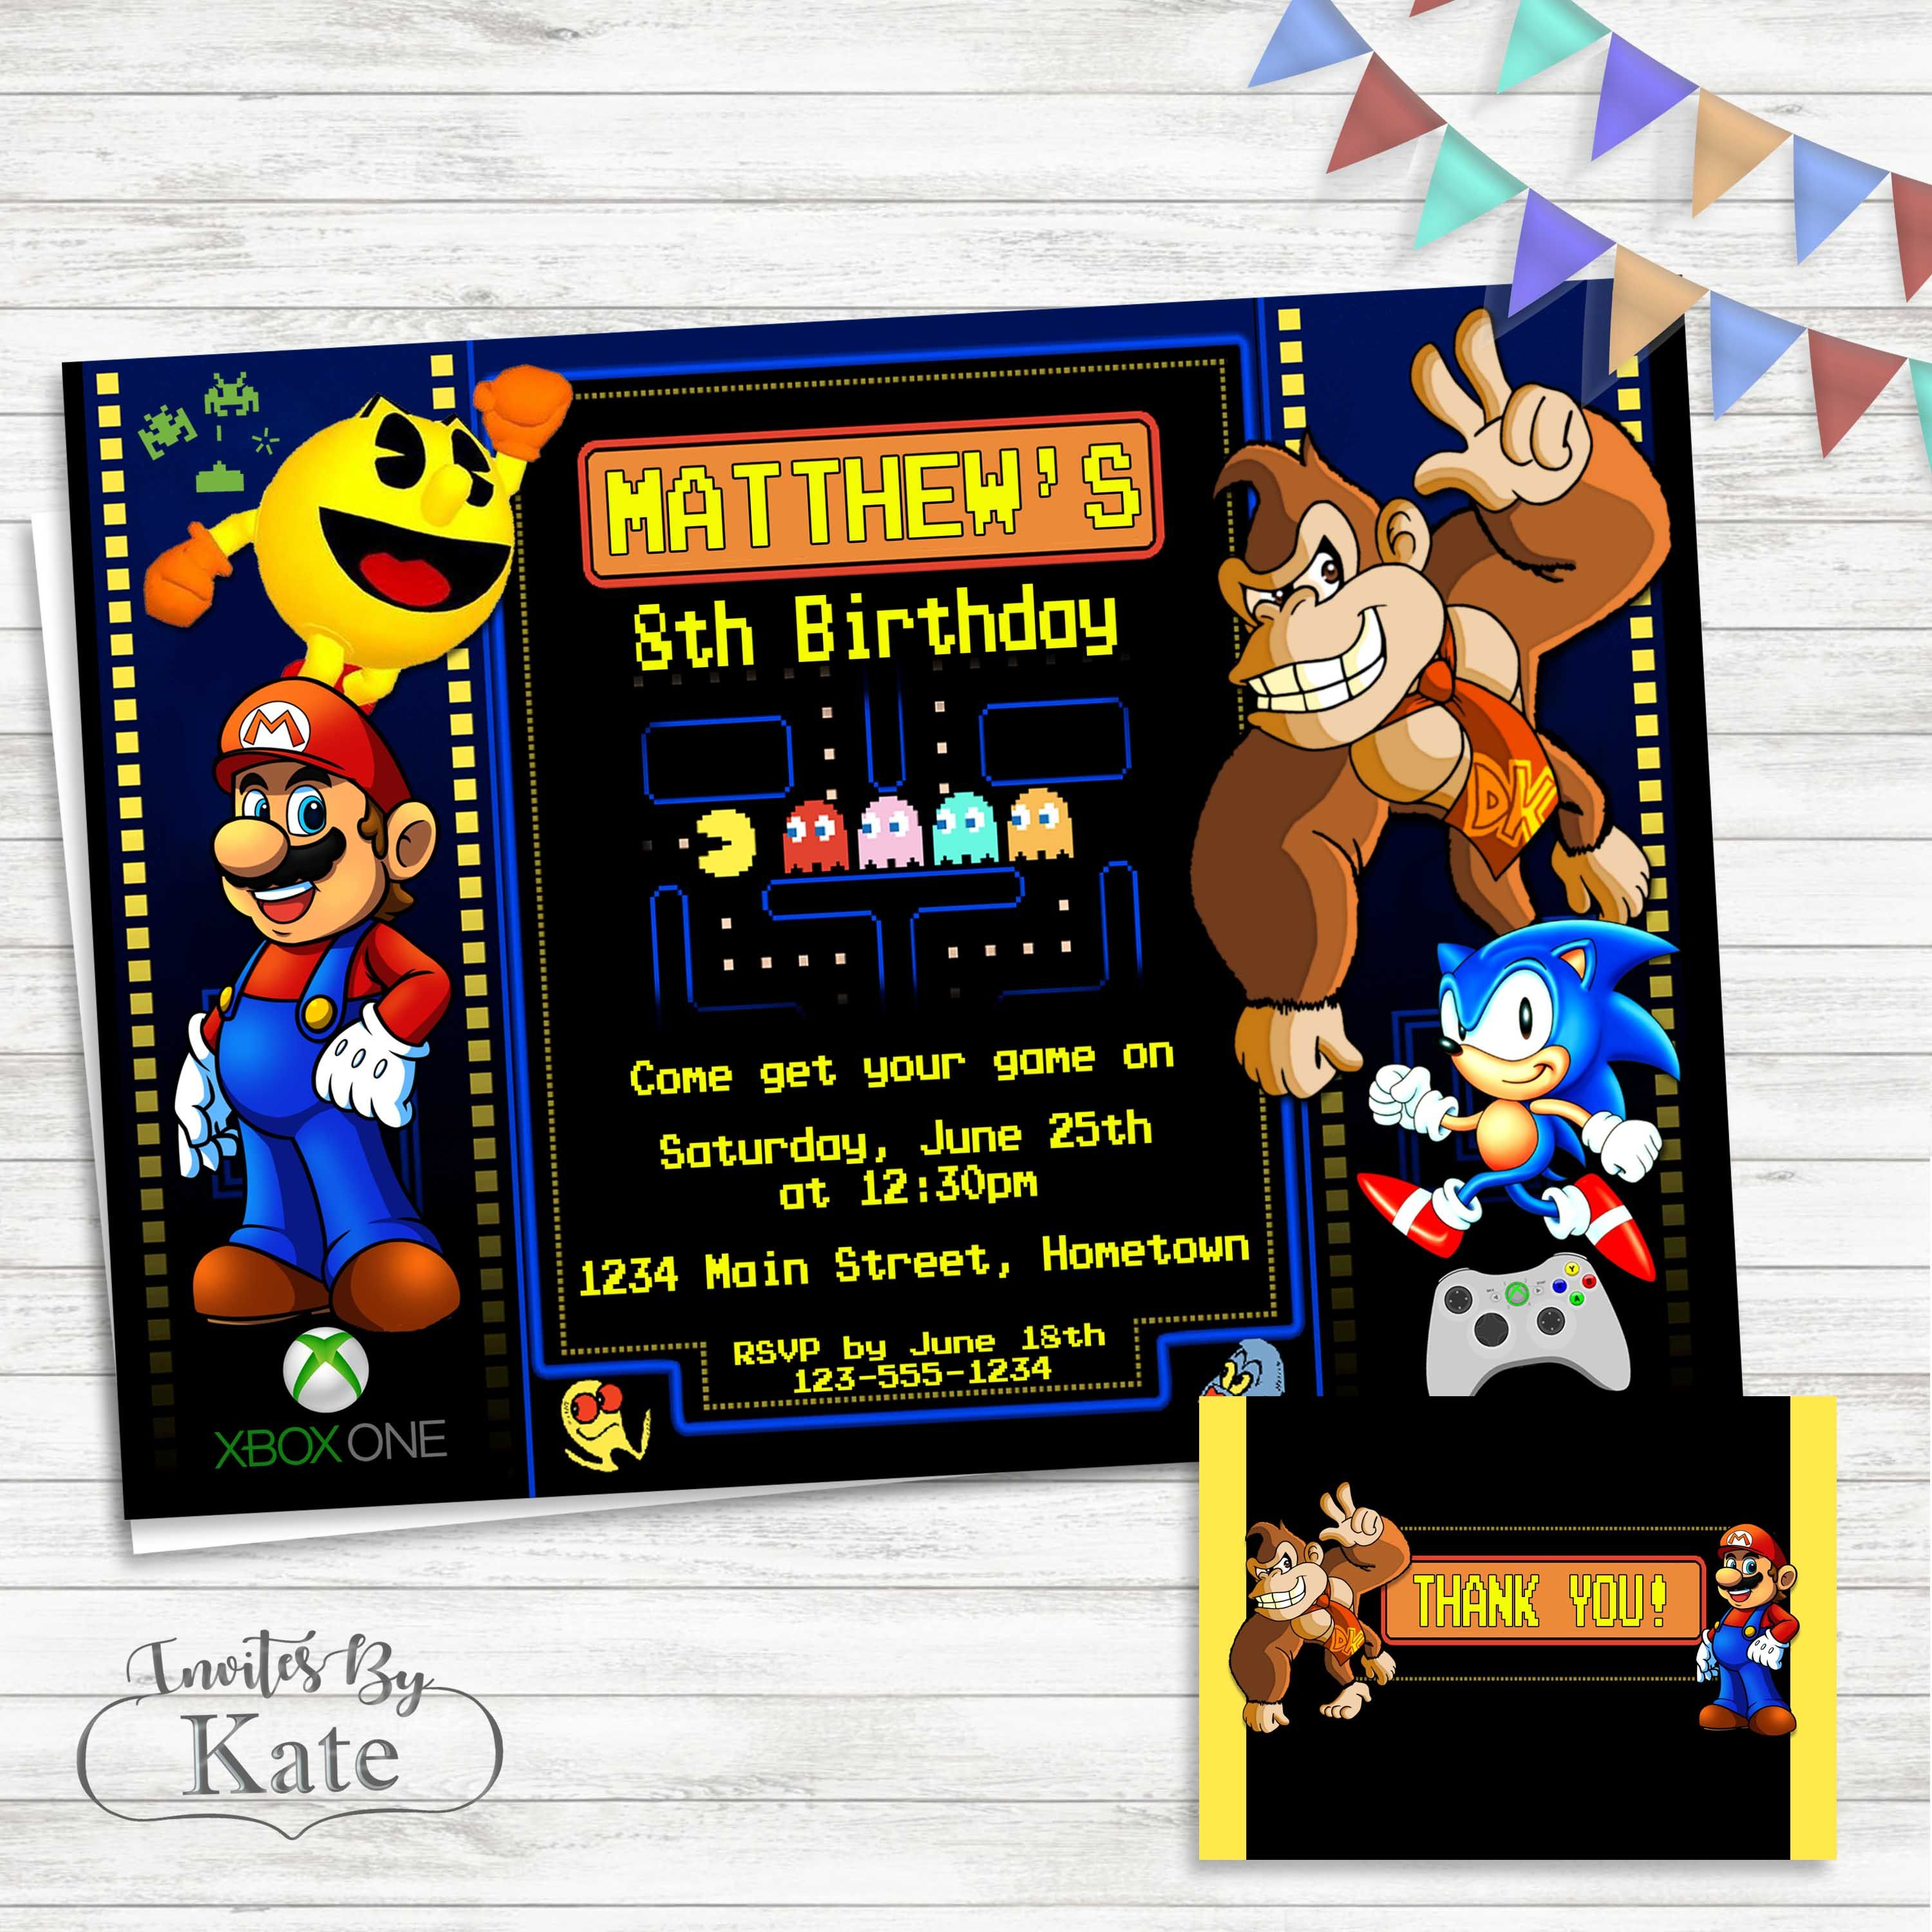 arcade video game birthday invitation personalized for you